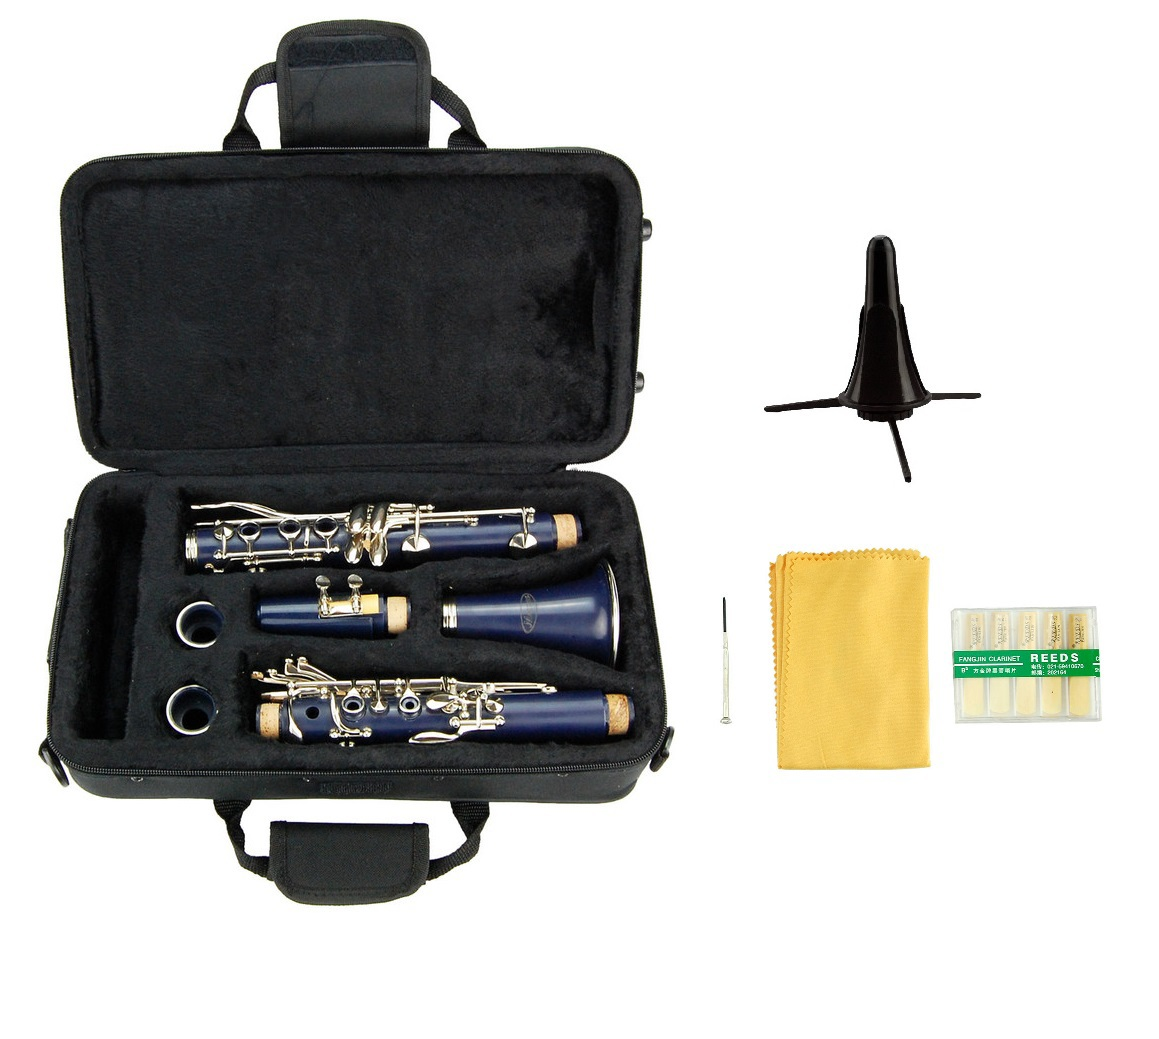 Merano B Flat BLUE Clarinet with Carrying Case,Free Stand,Extra 10 Reeds